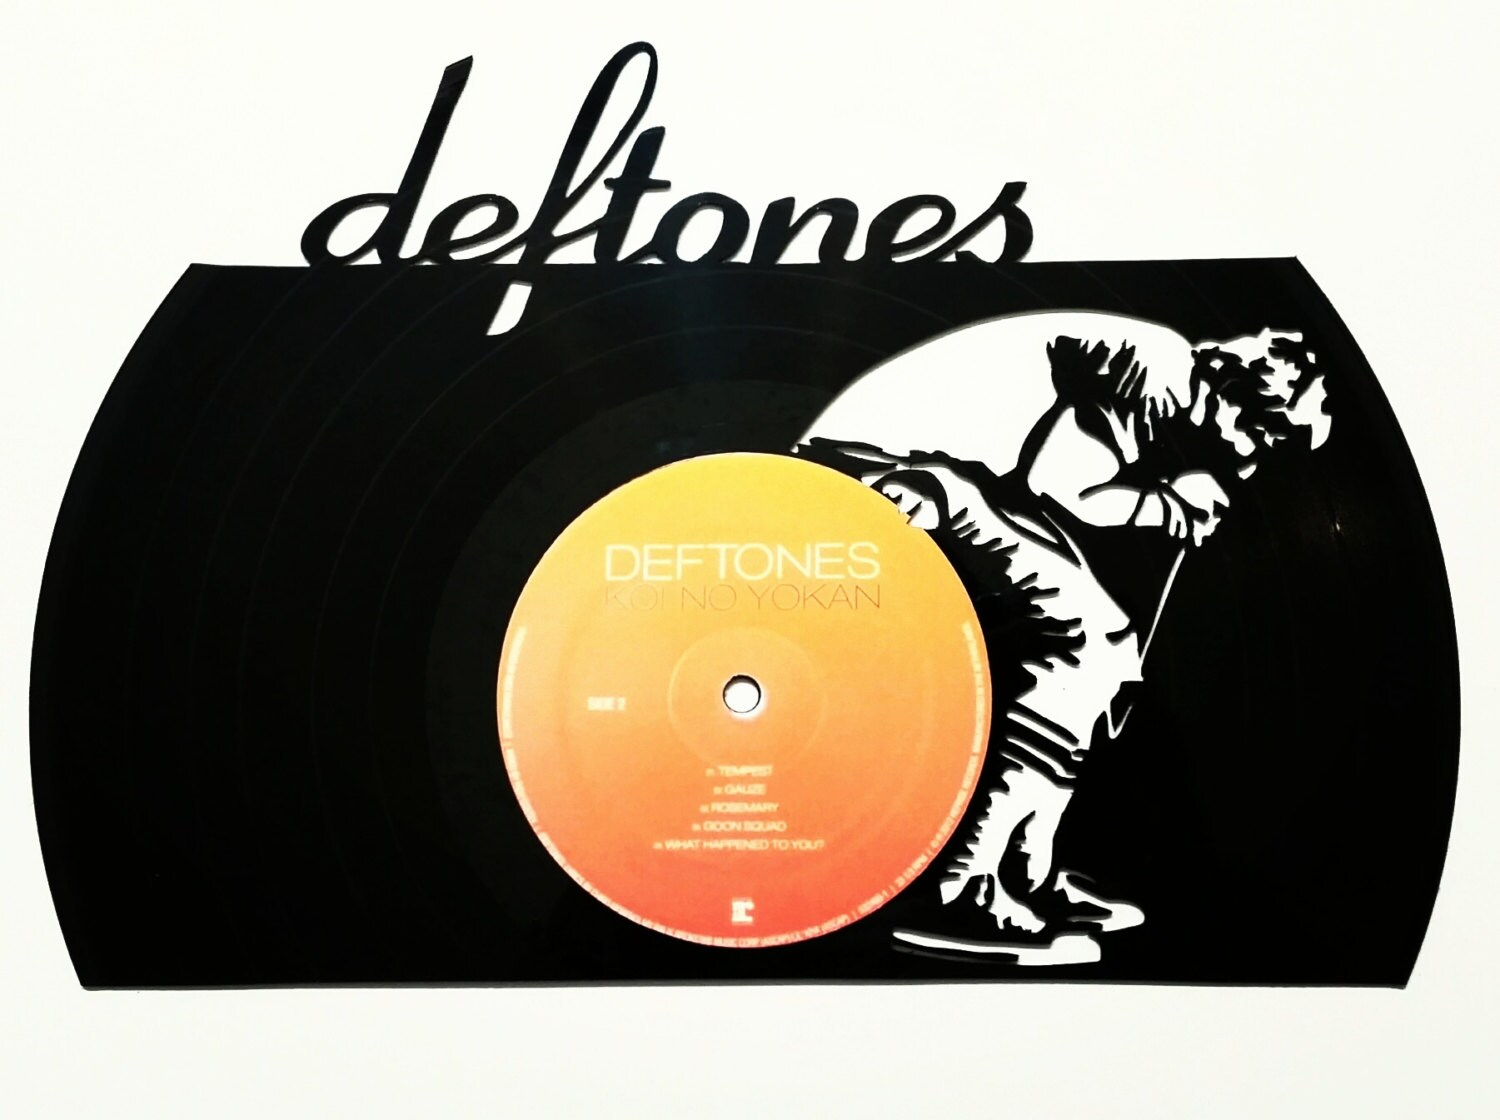 Deftones Chino singing silhouette vinyl record art. On a